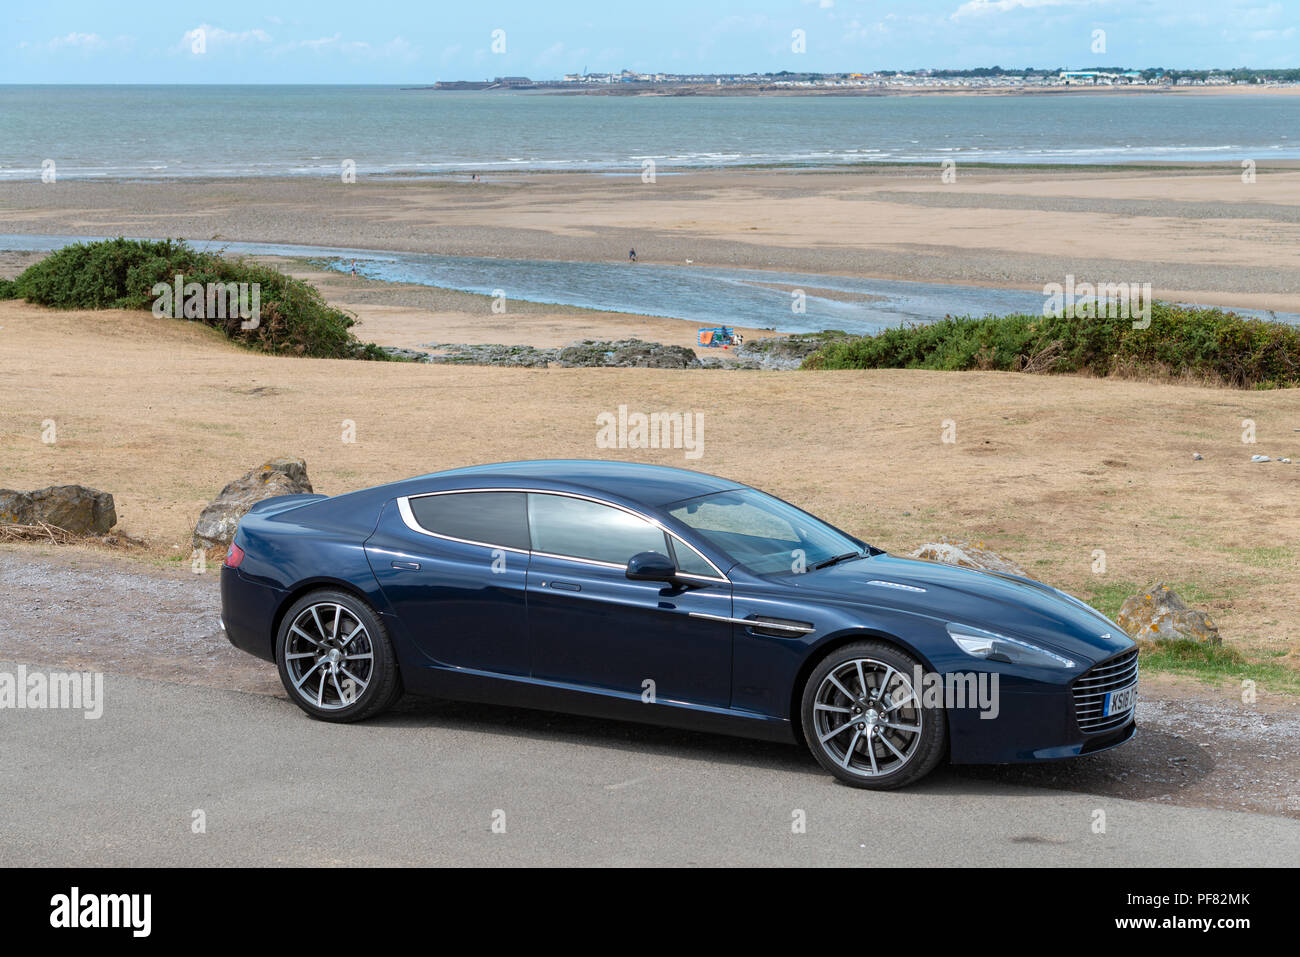 An Aston Martin Rapide S Four Door Sports Saloon Car Photographed In - Aston martin four door